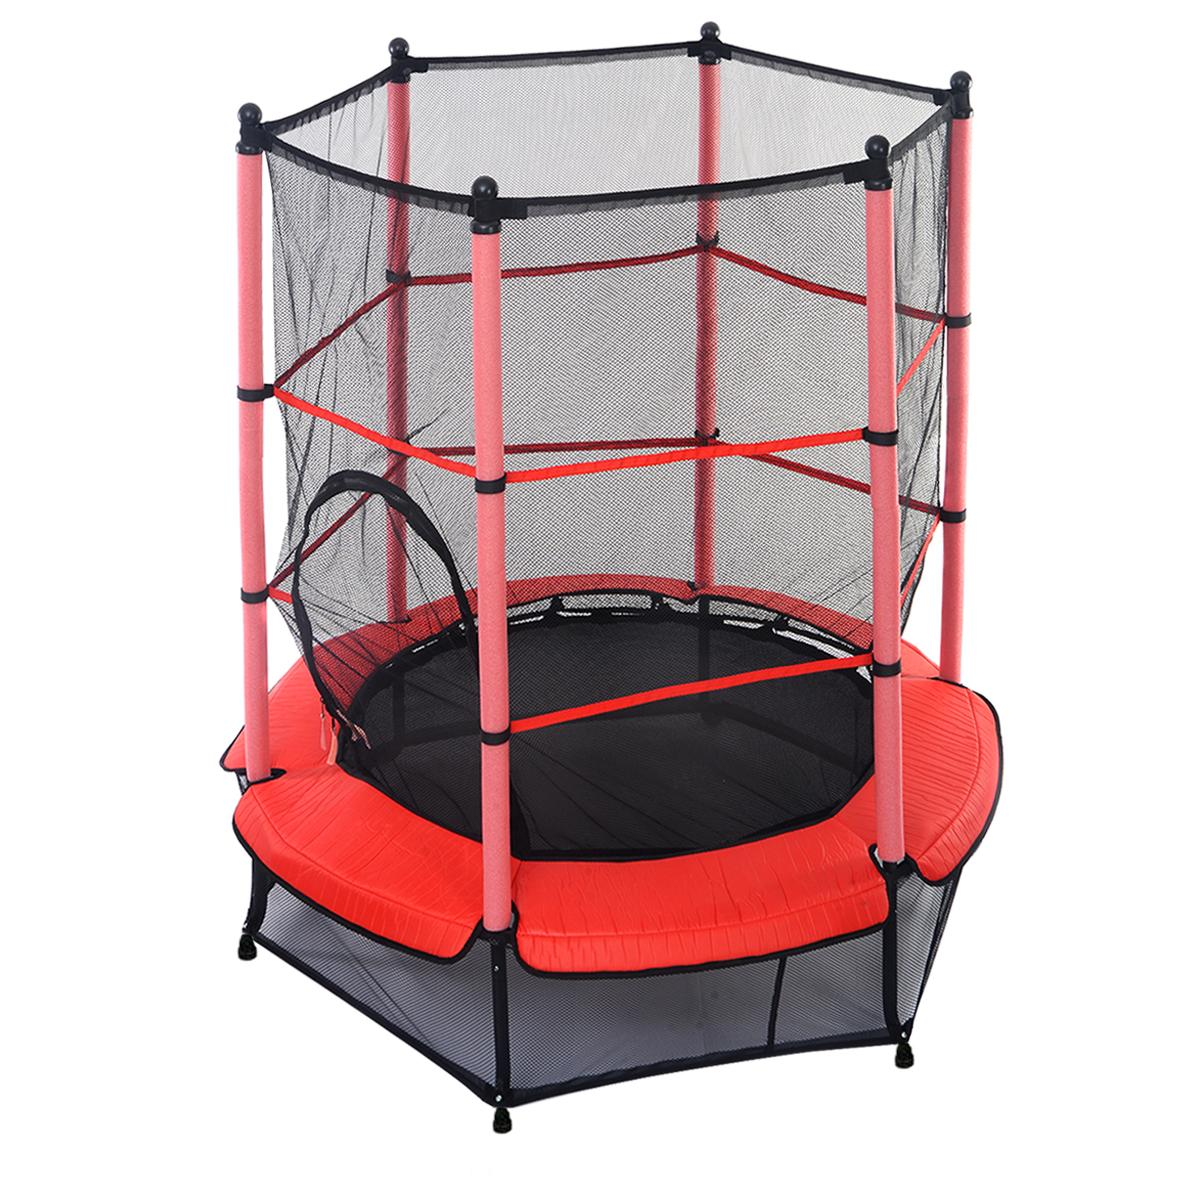 55 Kids Trampoline with Safety Net and Red Cover Garden ...